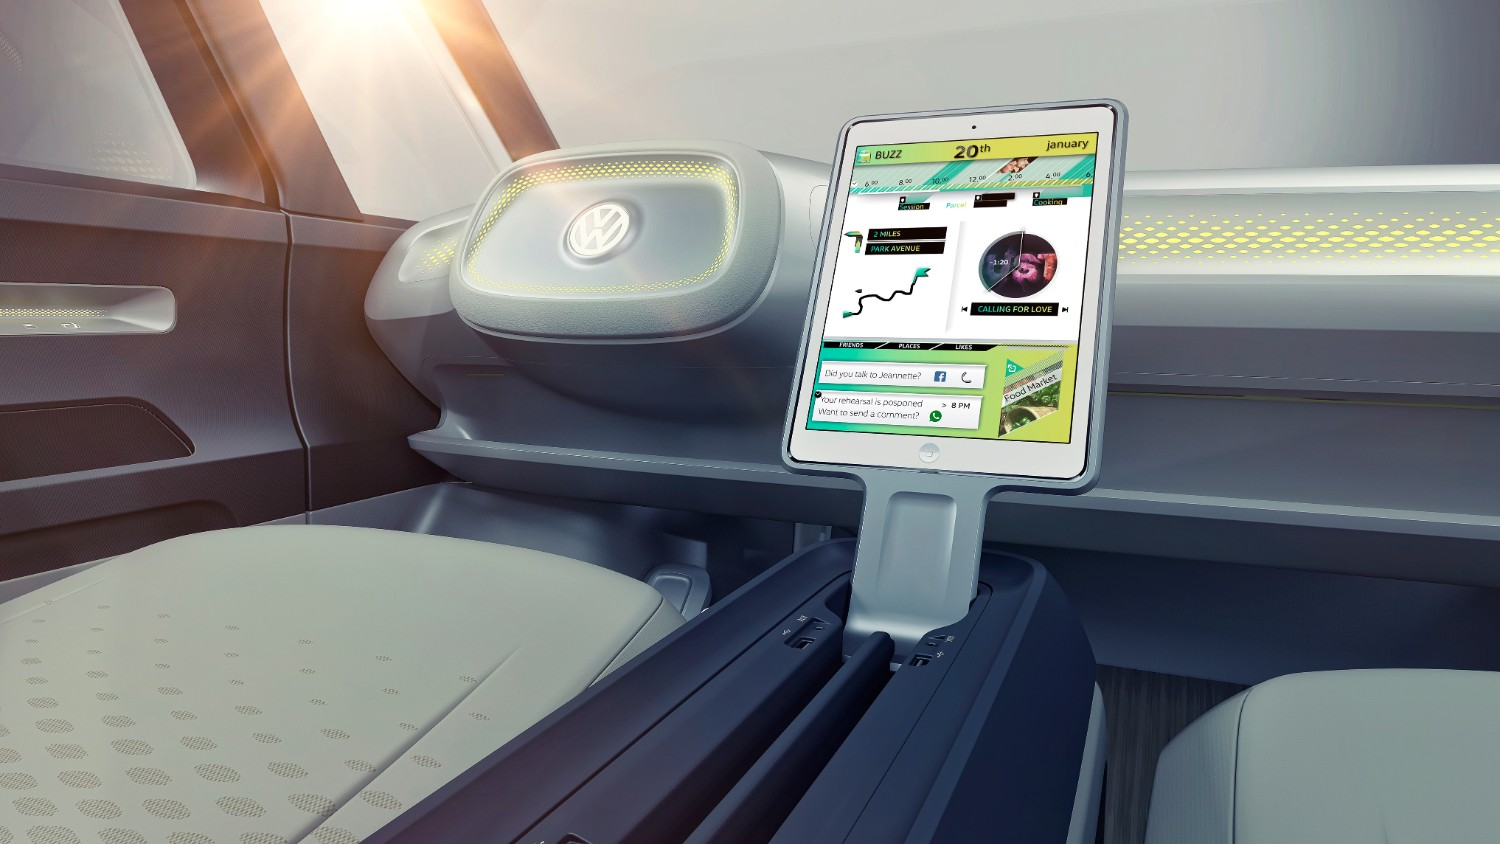 Technology included with Volkswagen's I.D. Buzz